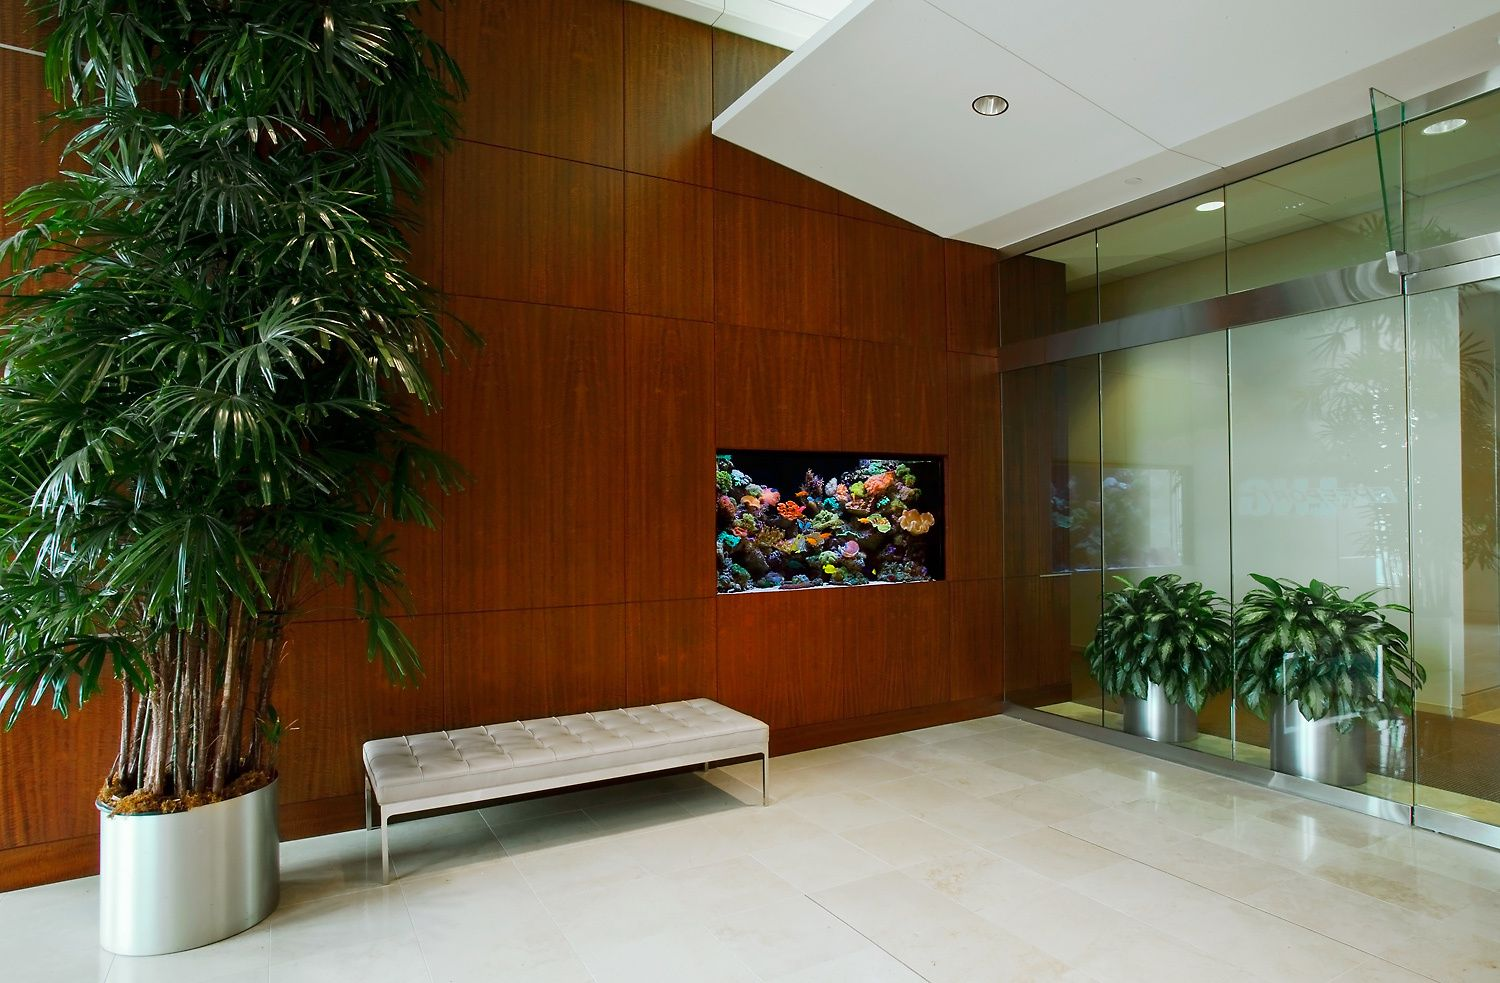 Live Coral Reef Aquarium in a Corporate Reception Space